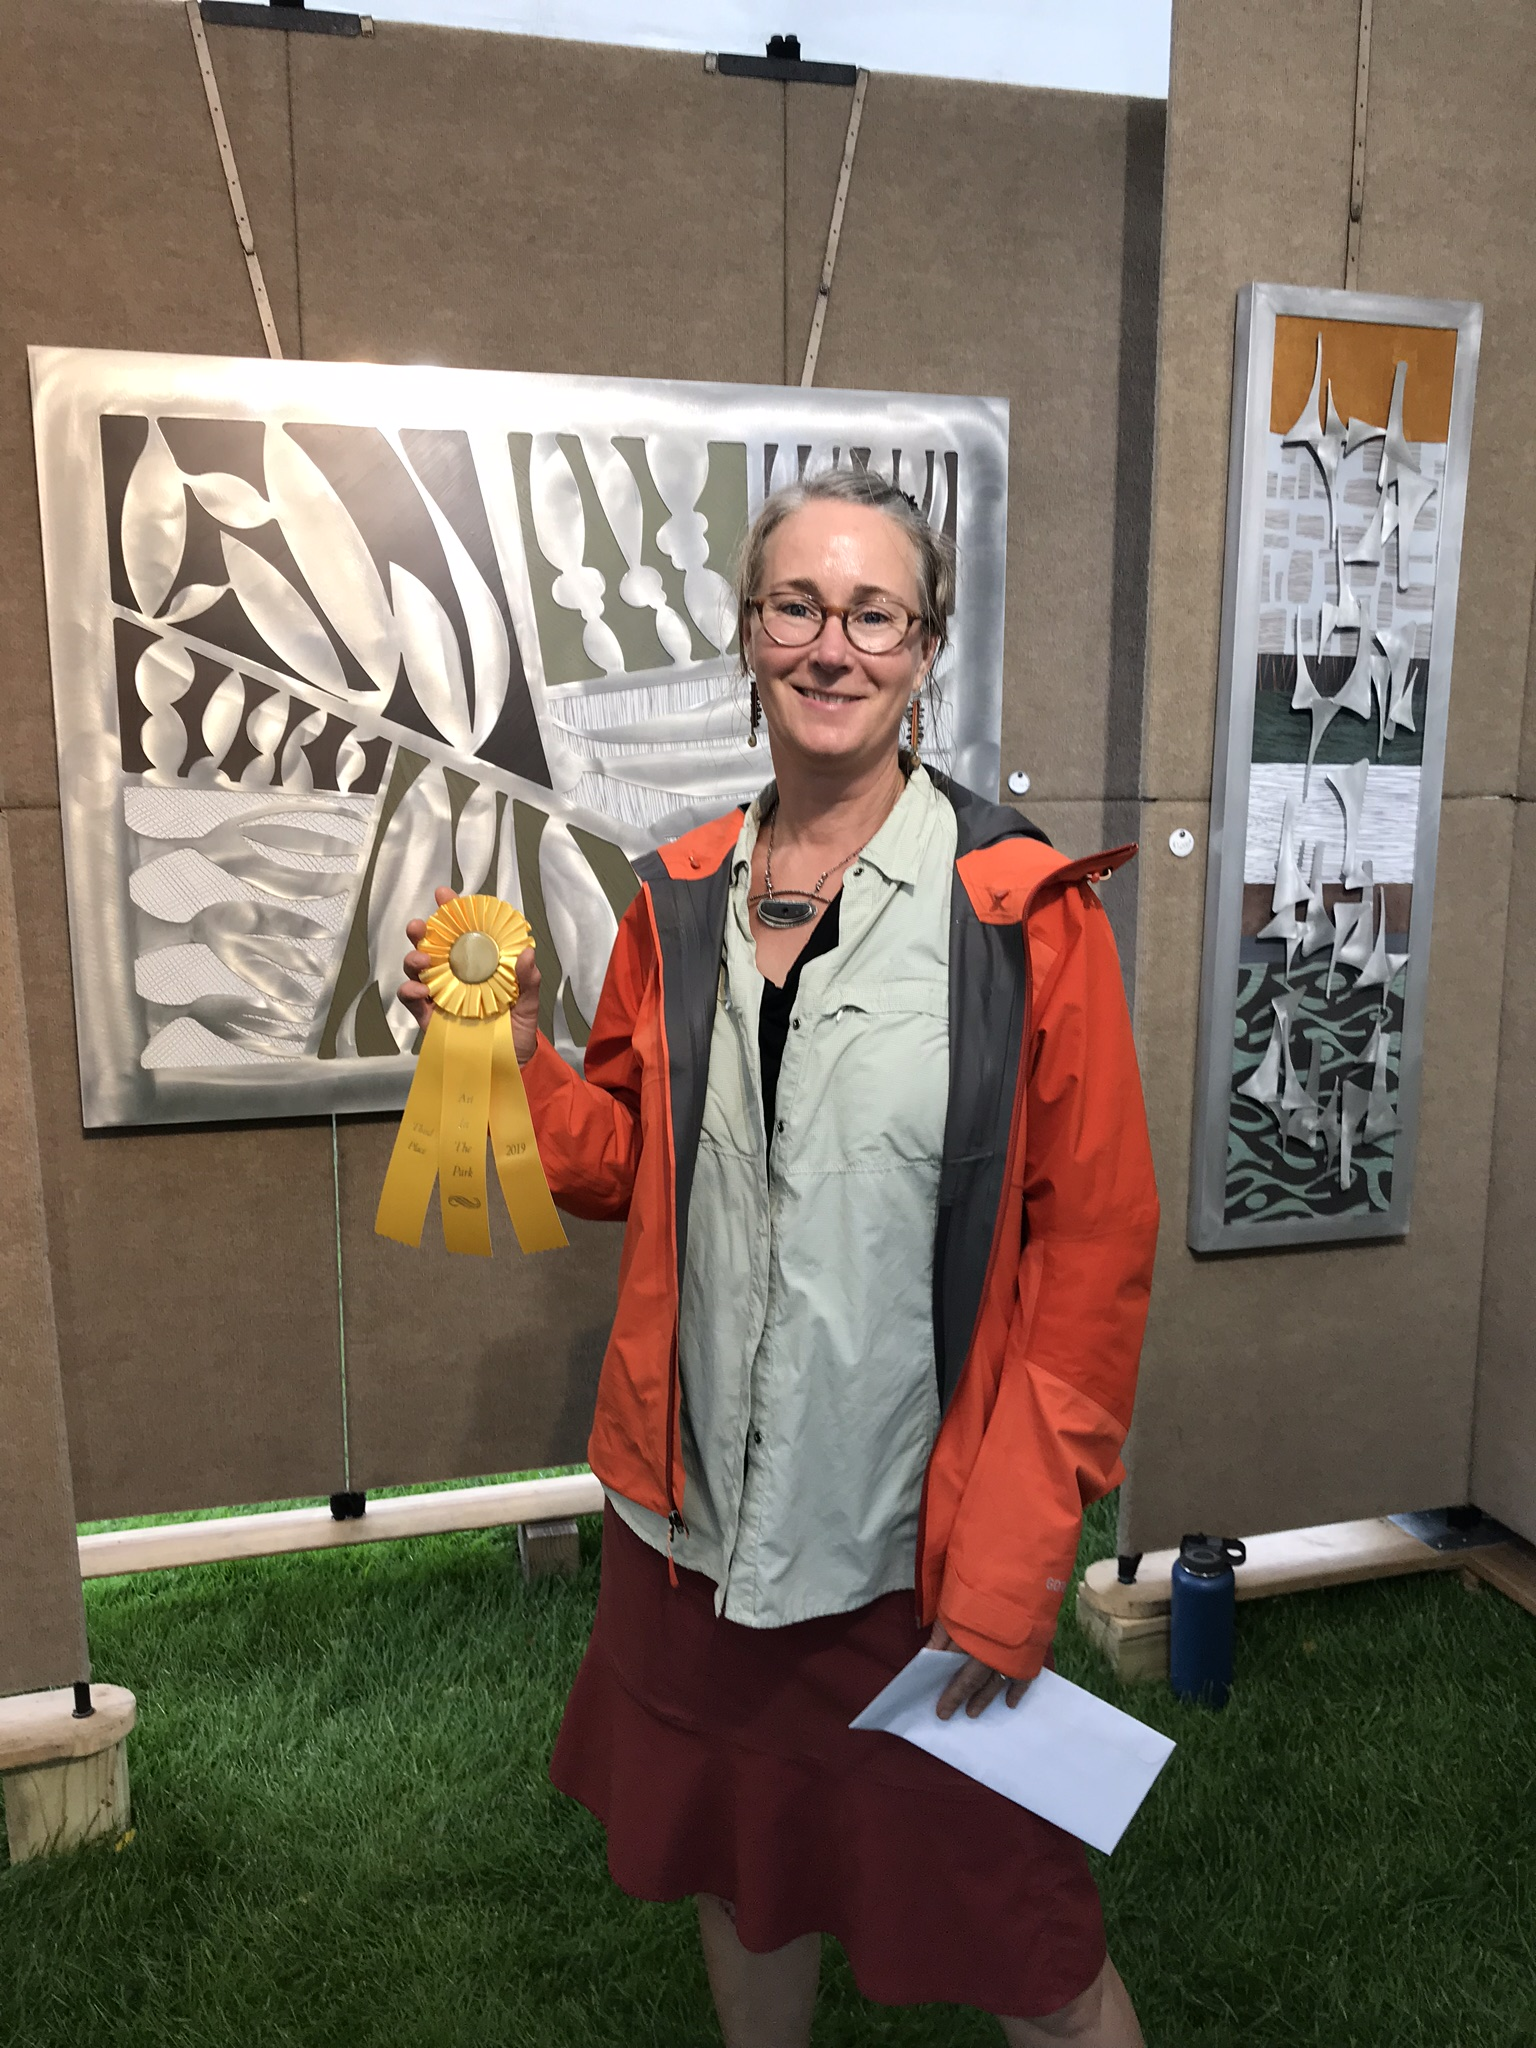 Cherie Haney - 2019 Petoskey Art in the Park - 3rd place